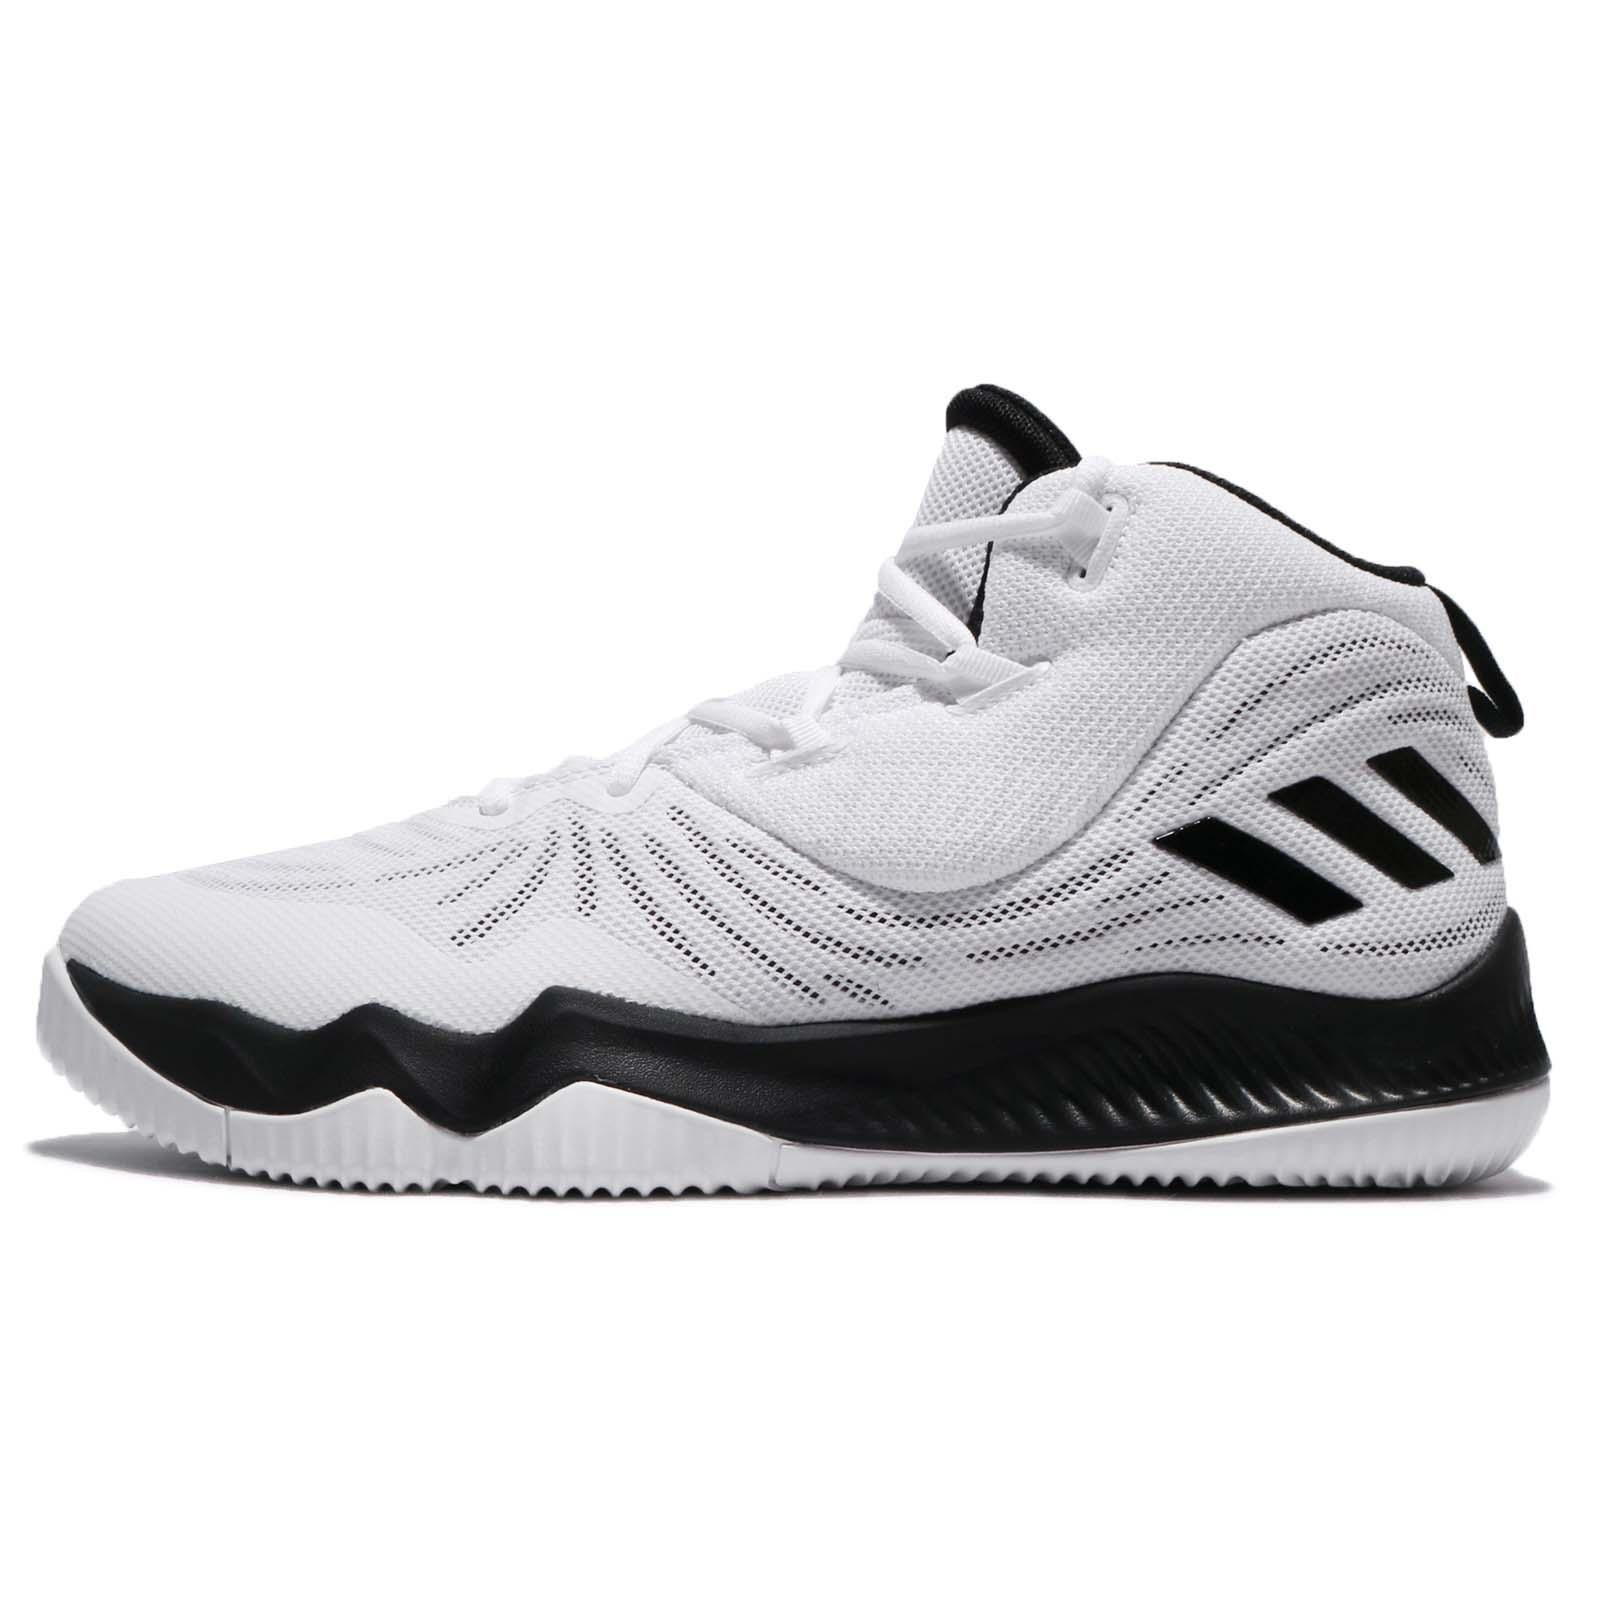 purchase cheap a73e4 cd473 ... adidas D Rose Dominate III 3 Derrick White Black Men Basketball Shoes  CQ0204 best sneakers ad978 ...